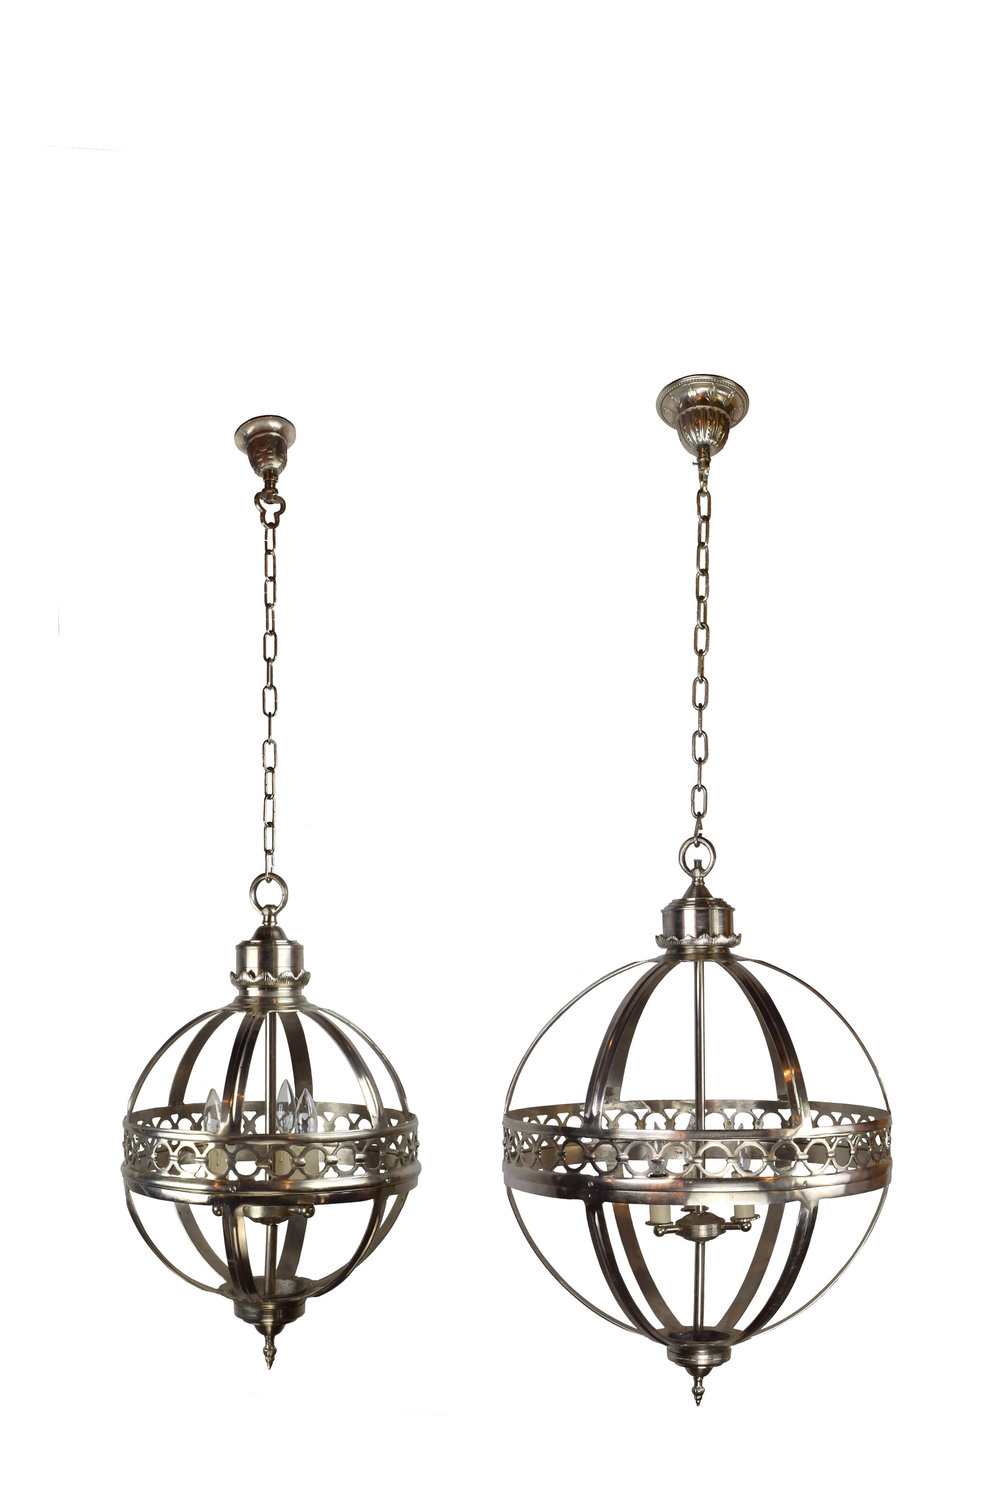 47168-small-spherical-nickel-fixture-side-by-side-with-large-take-2.jpg